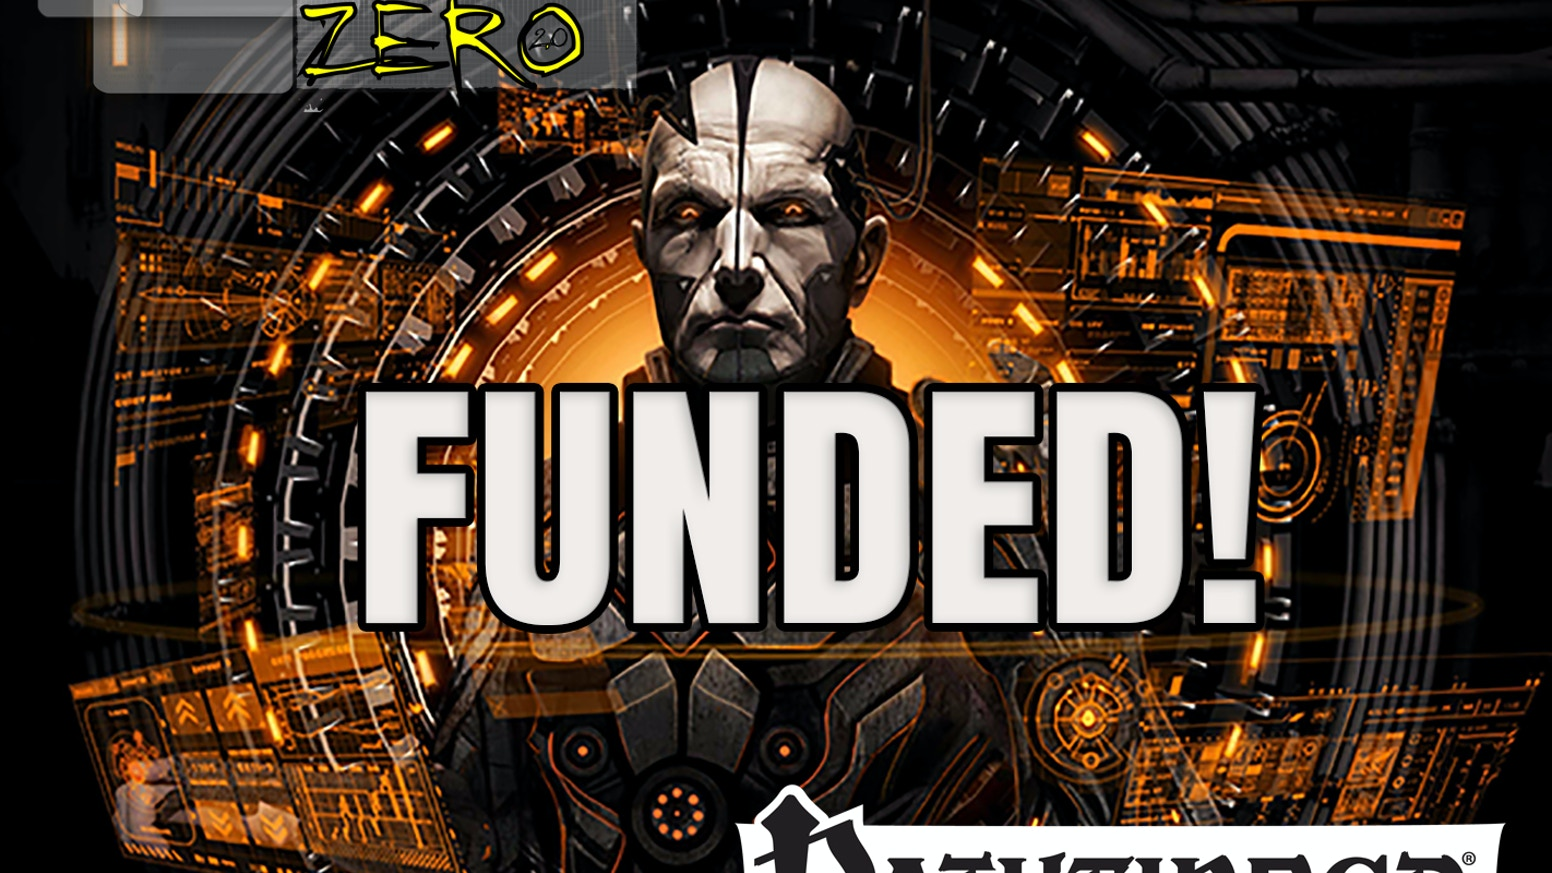 Interface Zero 2 0: Cyberpunk Action for the Pathfinder RPG by David